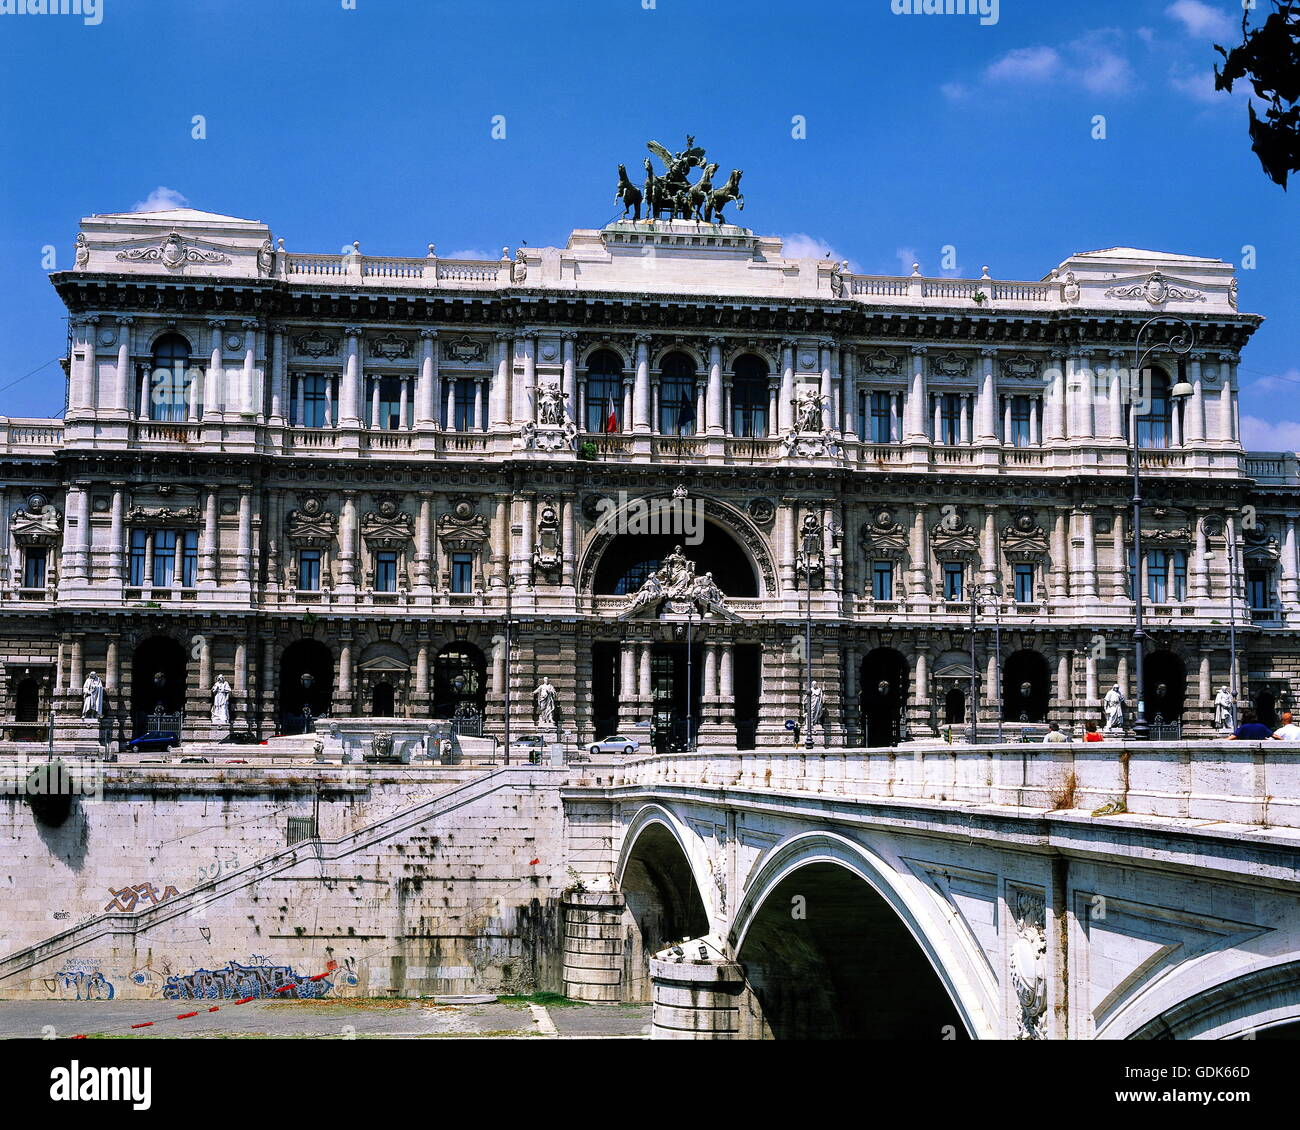 geography / travel, Italy, Rome, palace of justice, built: 1888-1910 by Gugliemo Calderini, exterior view, Ponte - Stock Image